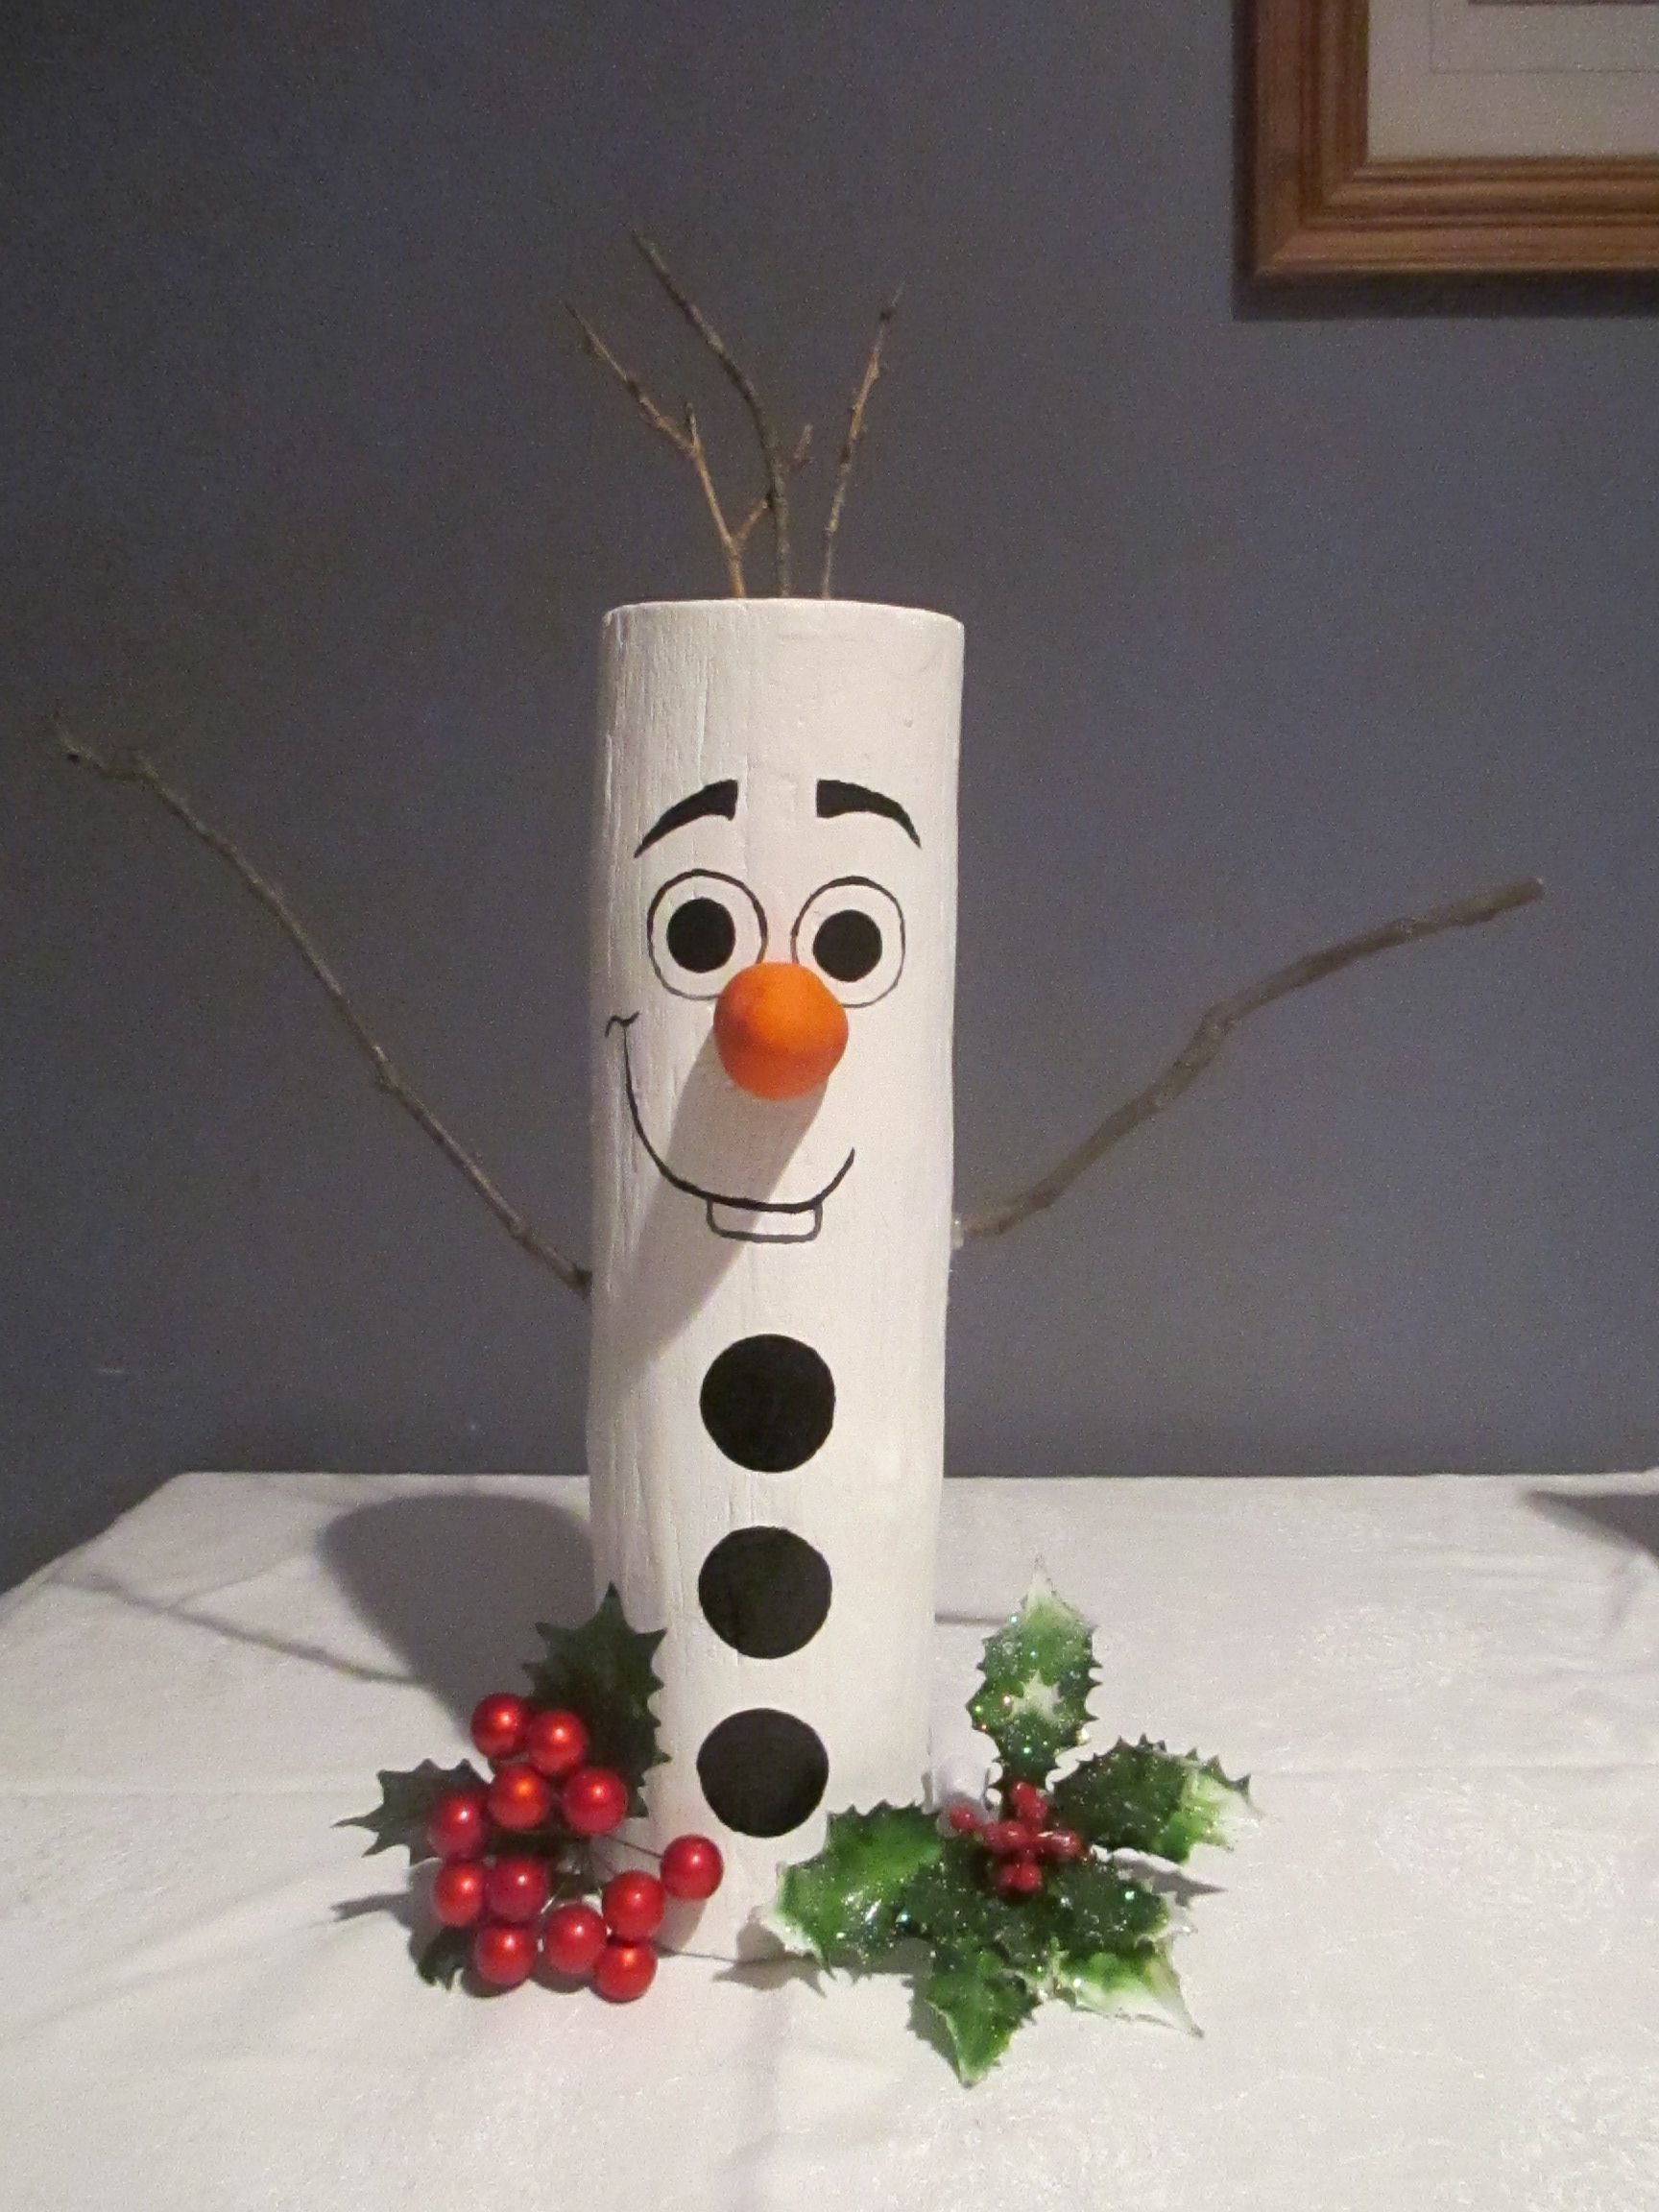 """Olaf, the Log Snowman, was newly handcrafted and hand painted and and entirely from tree logs. He stands approximately 15"""" tall and weighs 3 lbs. Created with love in a smoke free home. Sells for $10.00."""